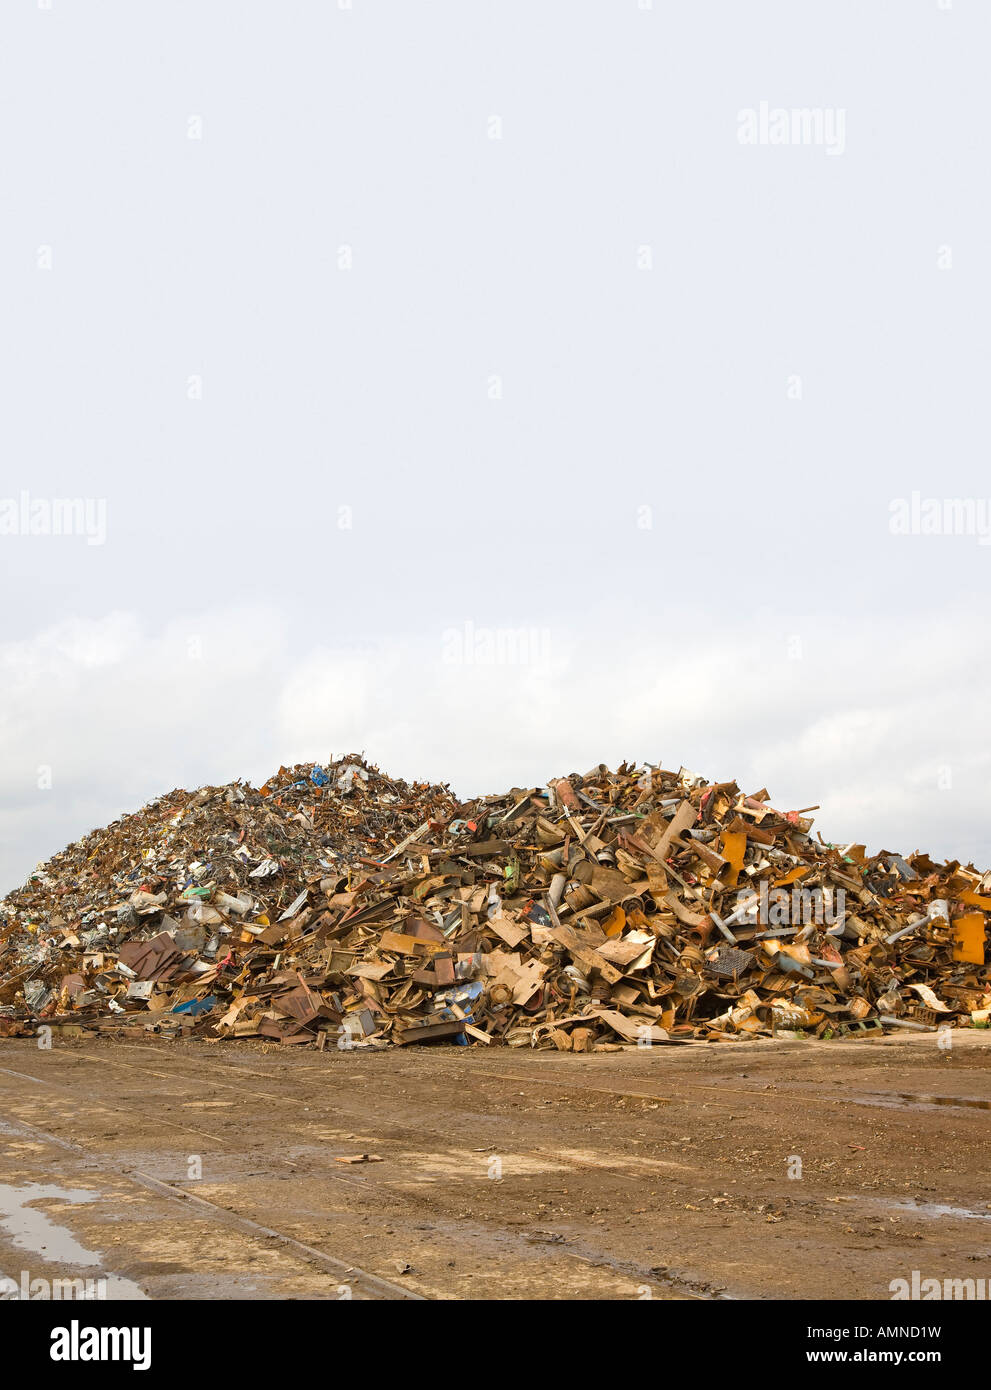 Mountain of scrap iron and steel to be recycled - Stock Image